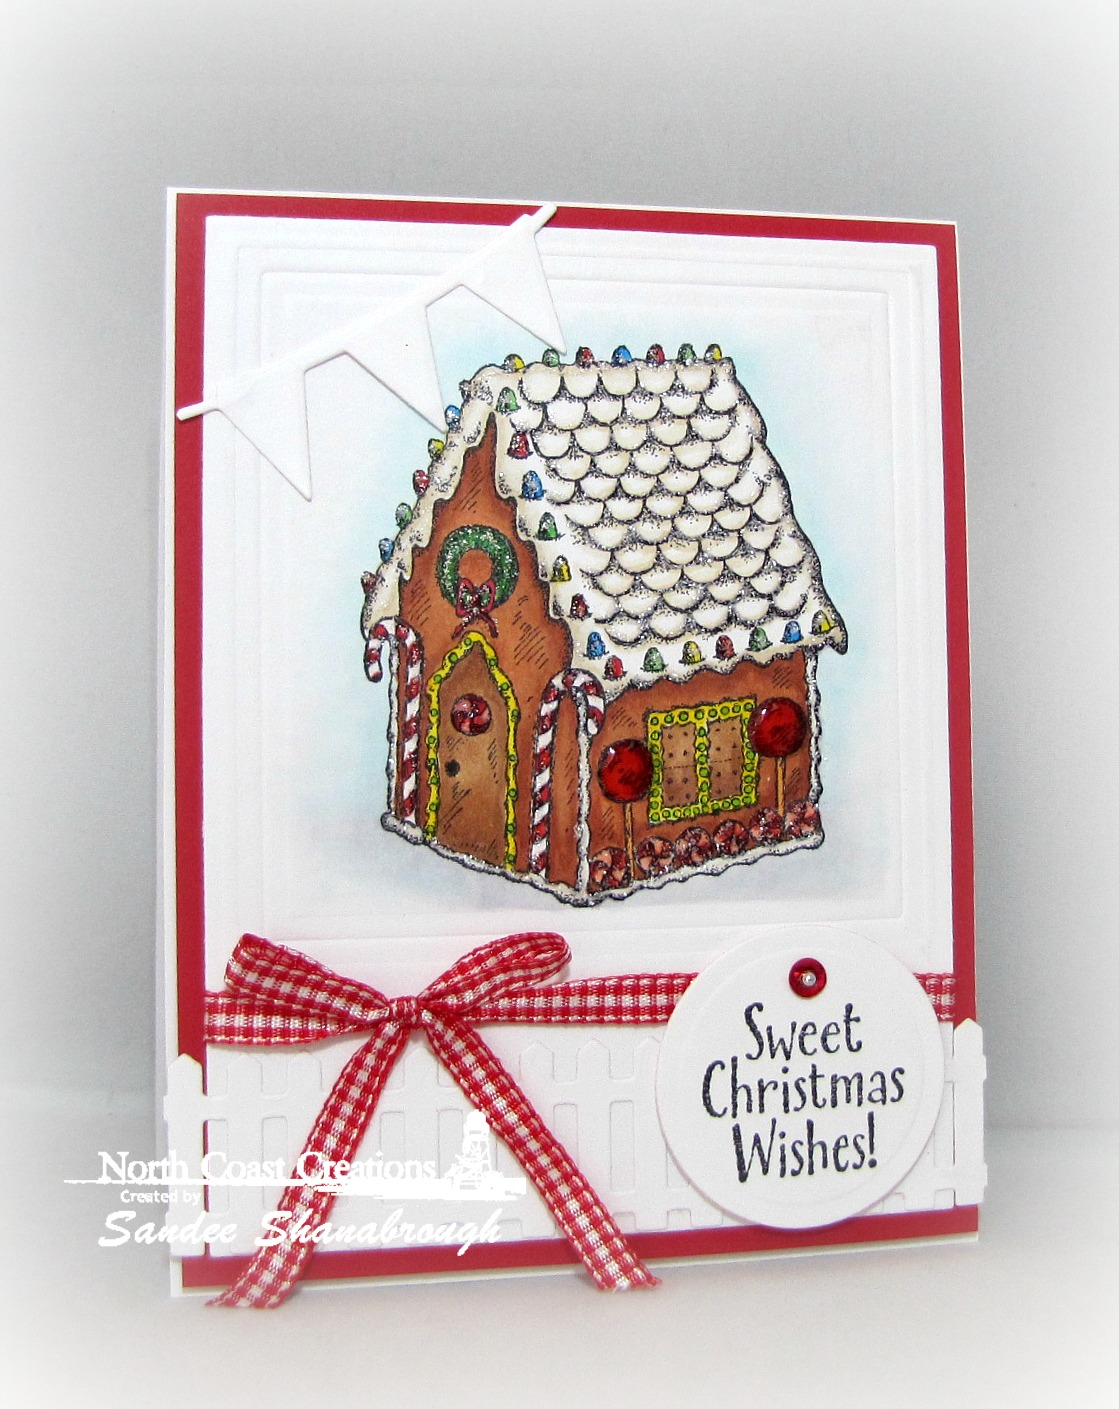 Stamps - North Coast Creations Sweet Christmas Wishes, ODBD Custom Fence Die, ODBD Custom Pennant Row Dies, ODBD Recipe Card and Tags Dies